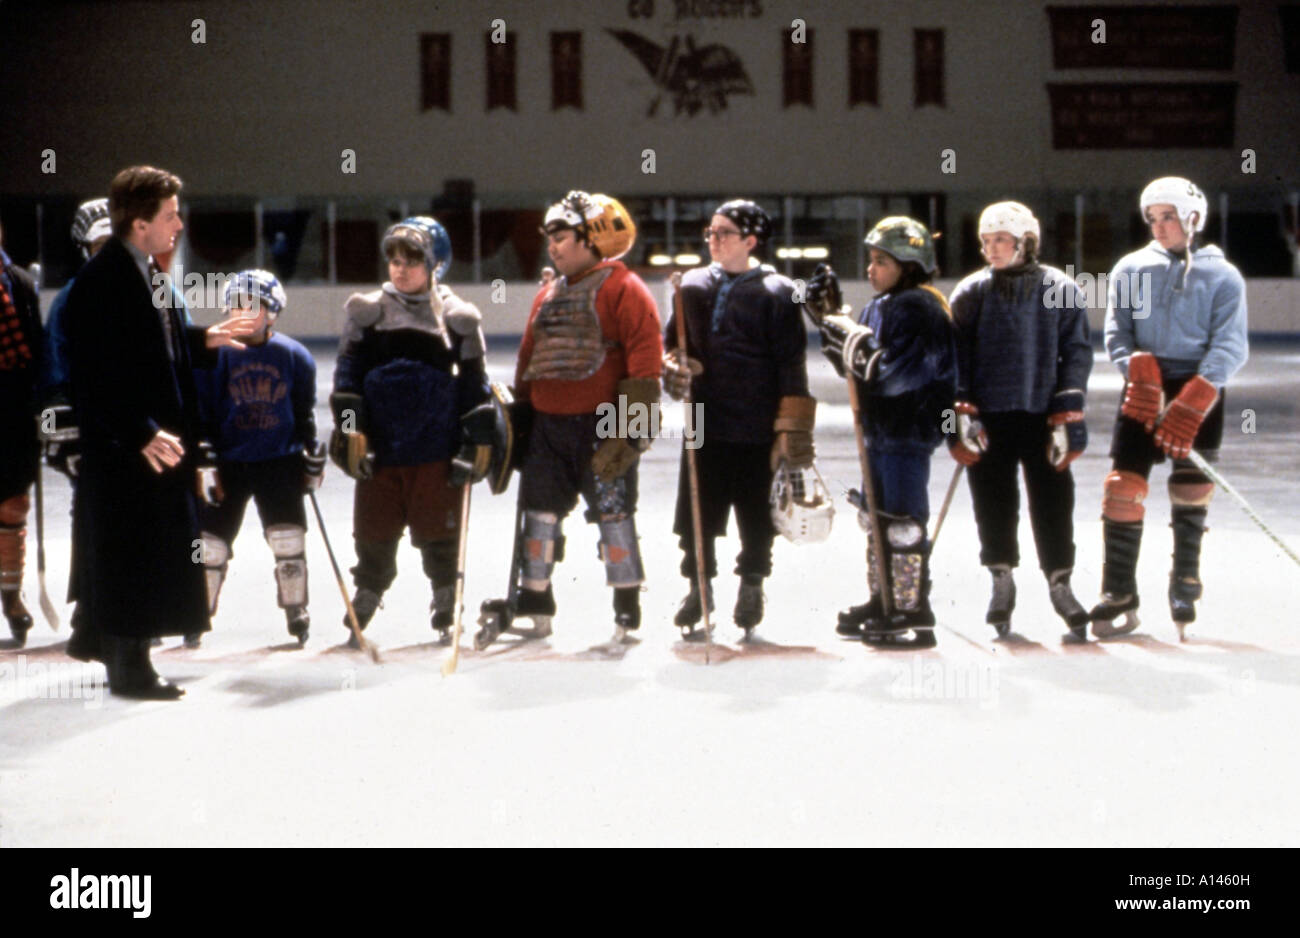 The Mighty Ducks Year 1992 Director Stephen Herek - Stock Image